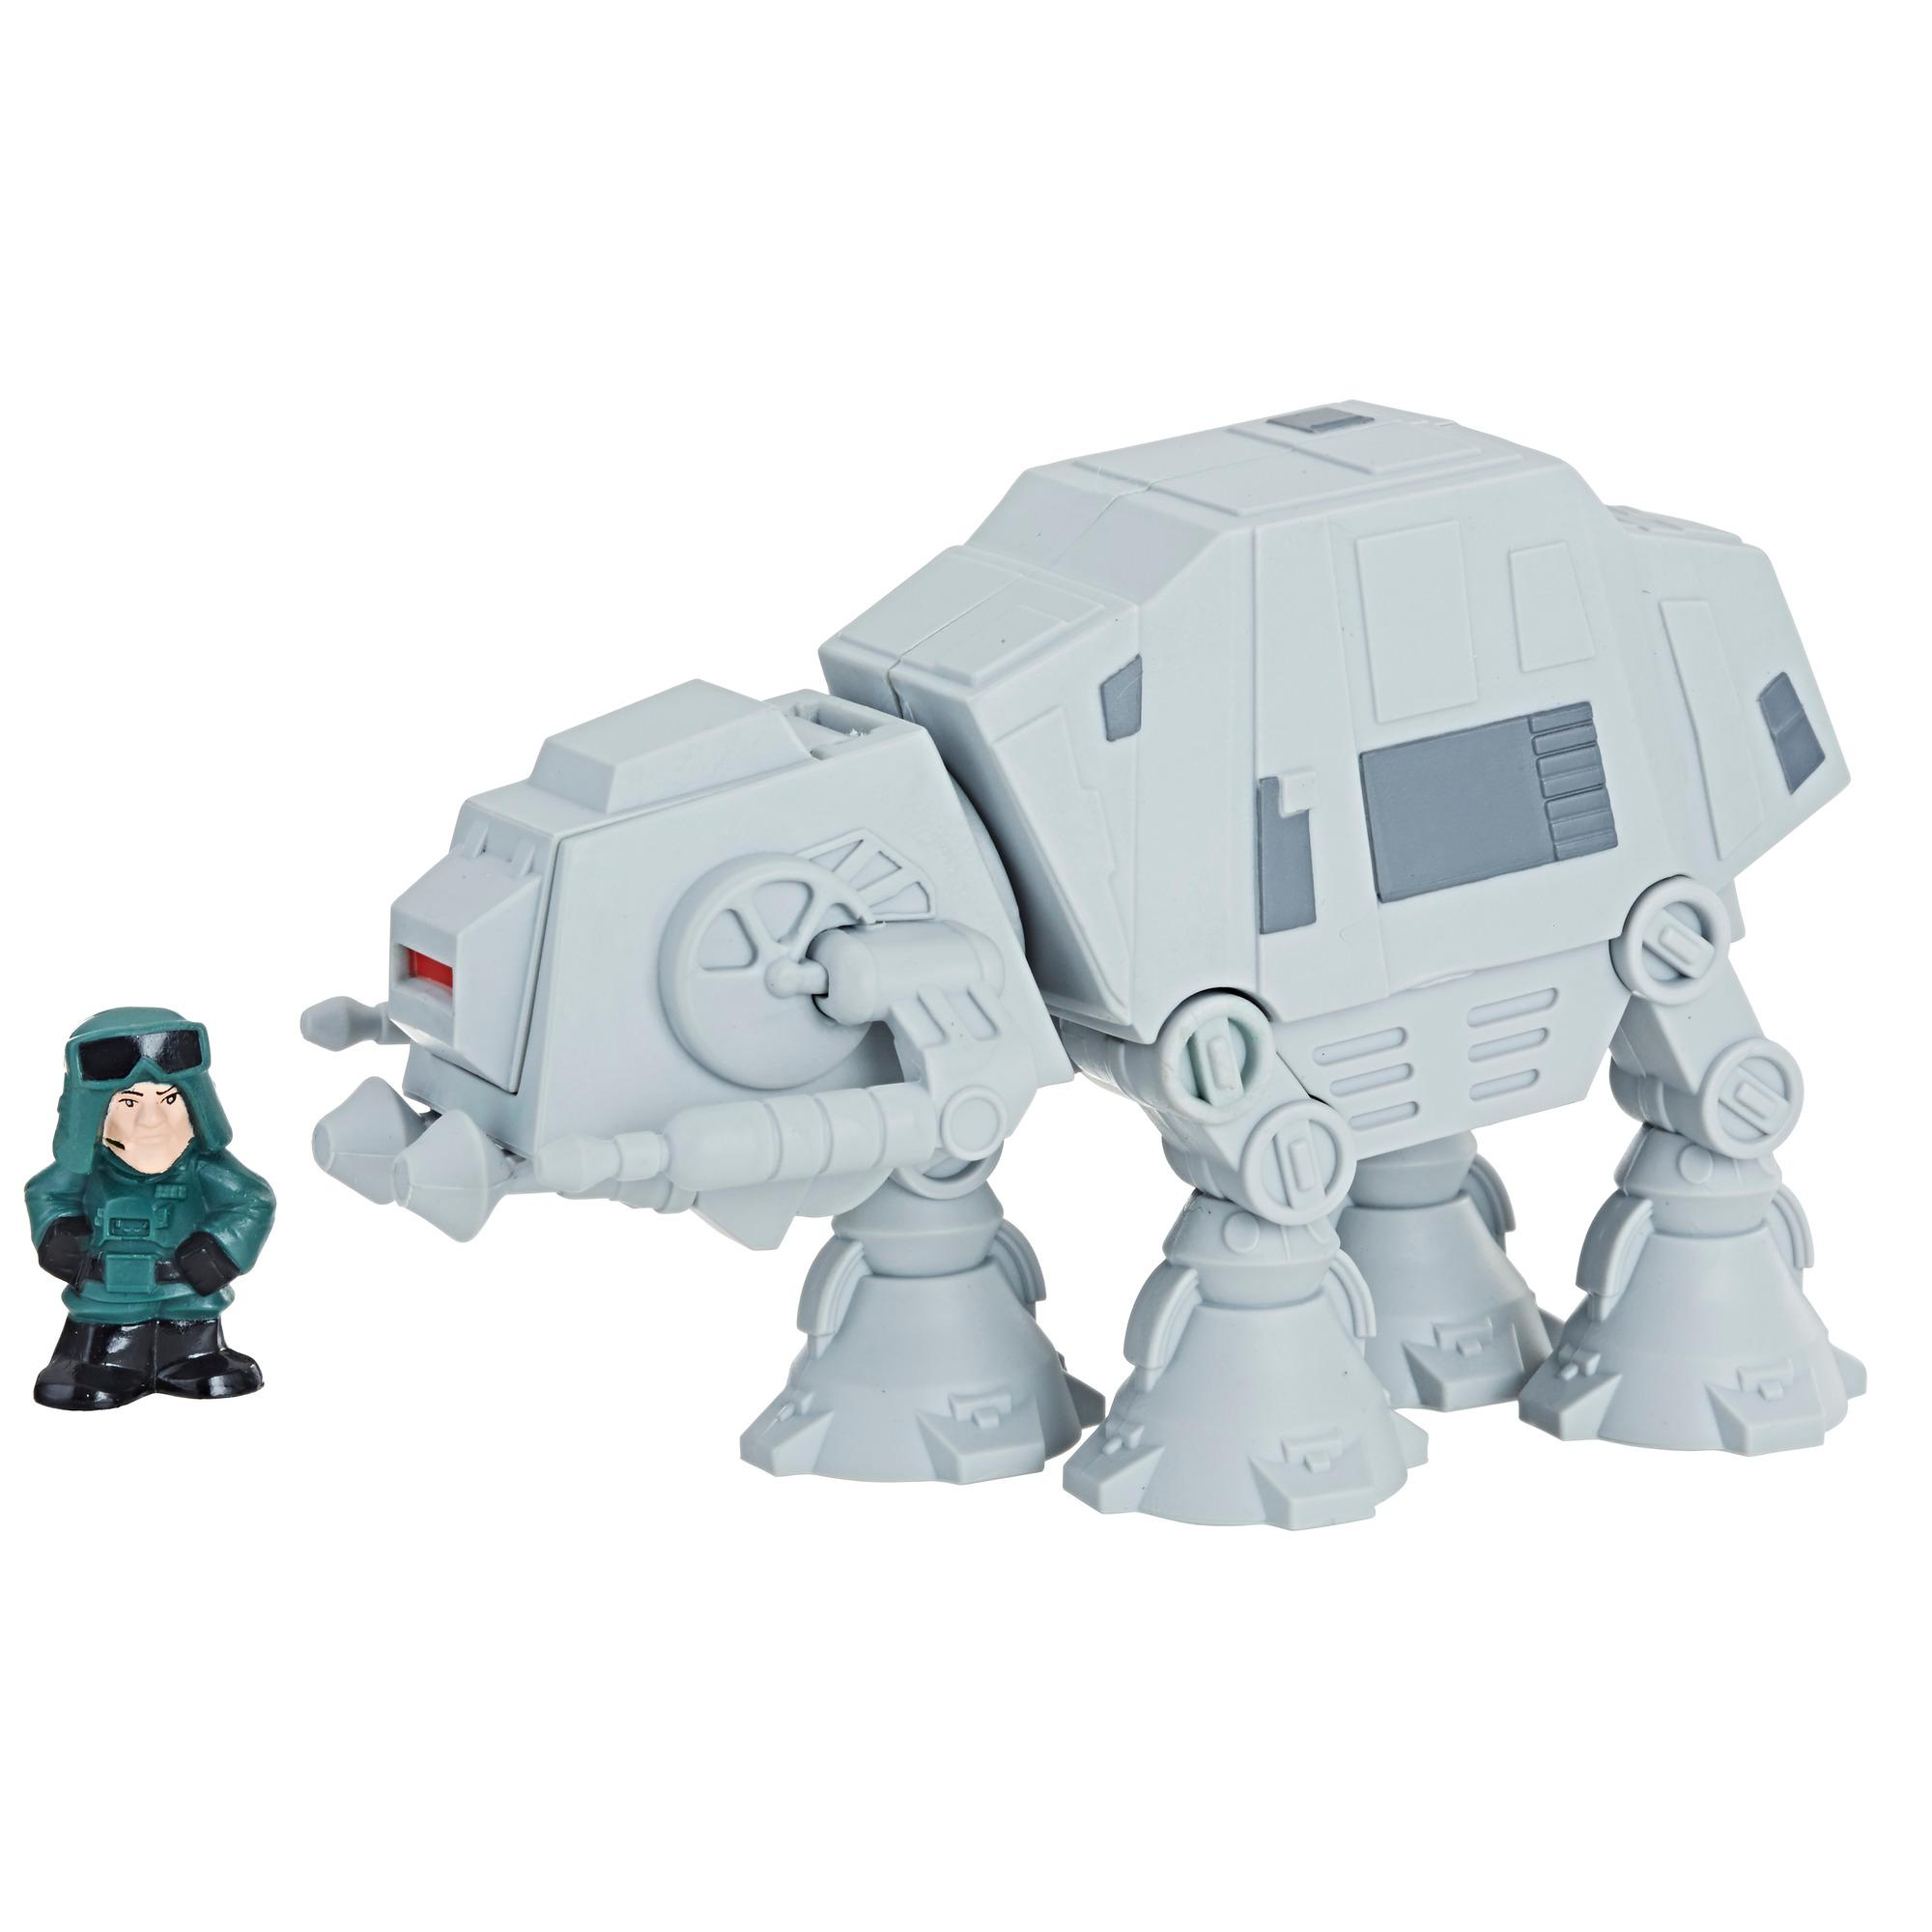 Star Wars Micro Force AT-AT Walker & AT-AT Commander Pack